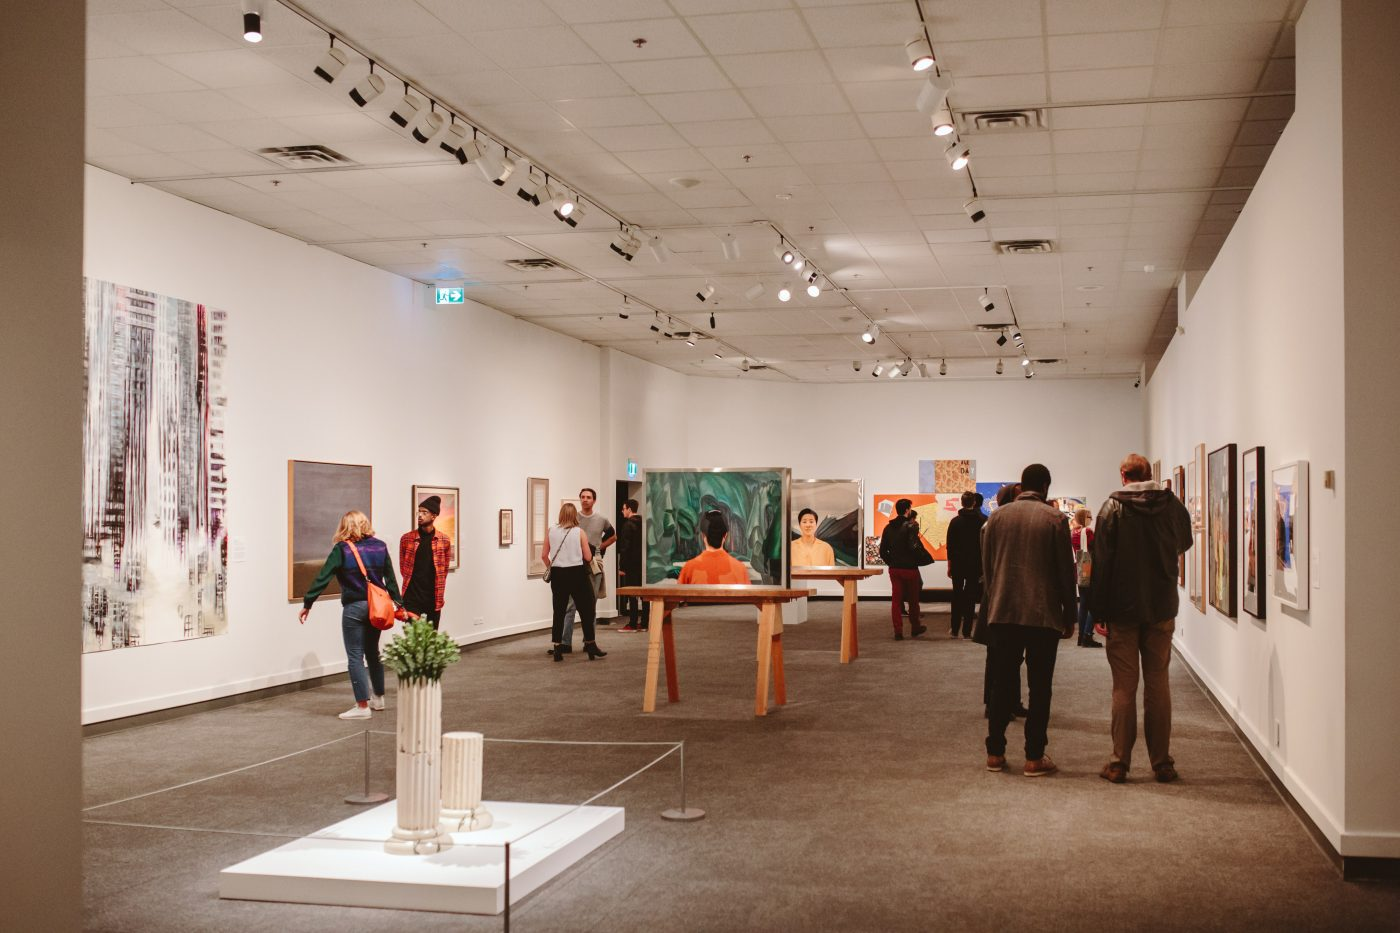 Visitors walk around Glenbow's second floor exhibitions